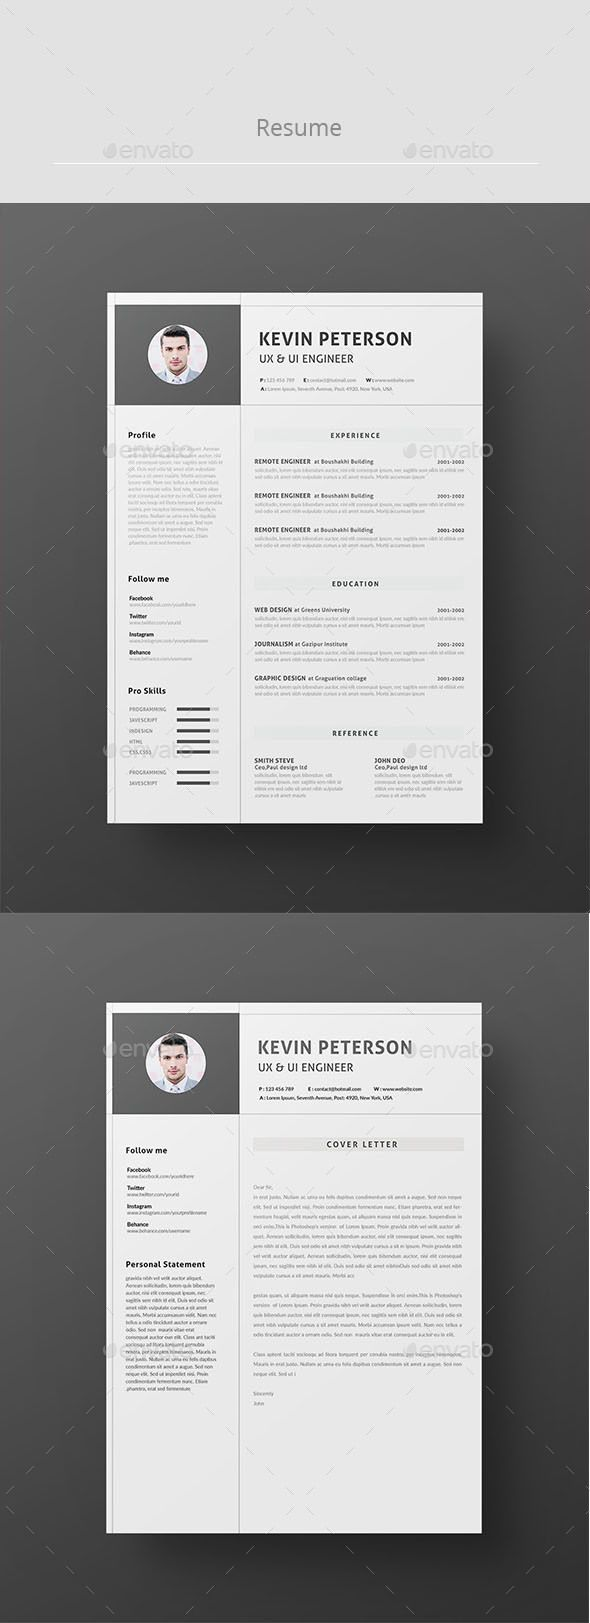 Best Wywfm Images On   Job Resume Template Resume